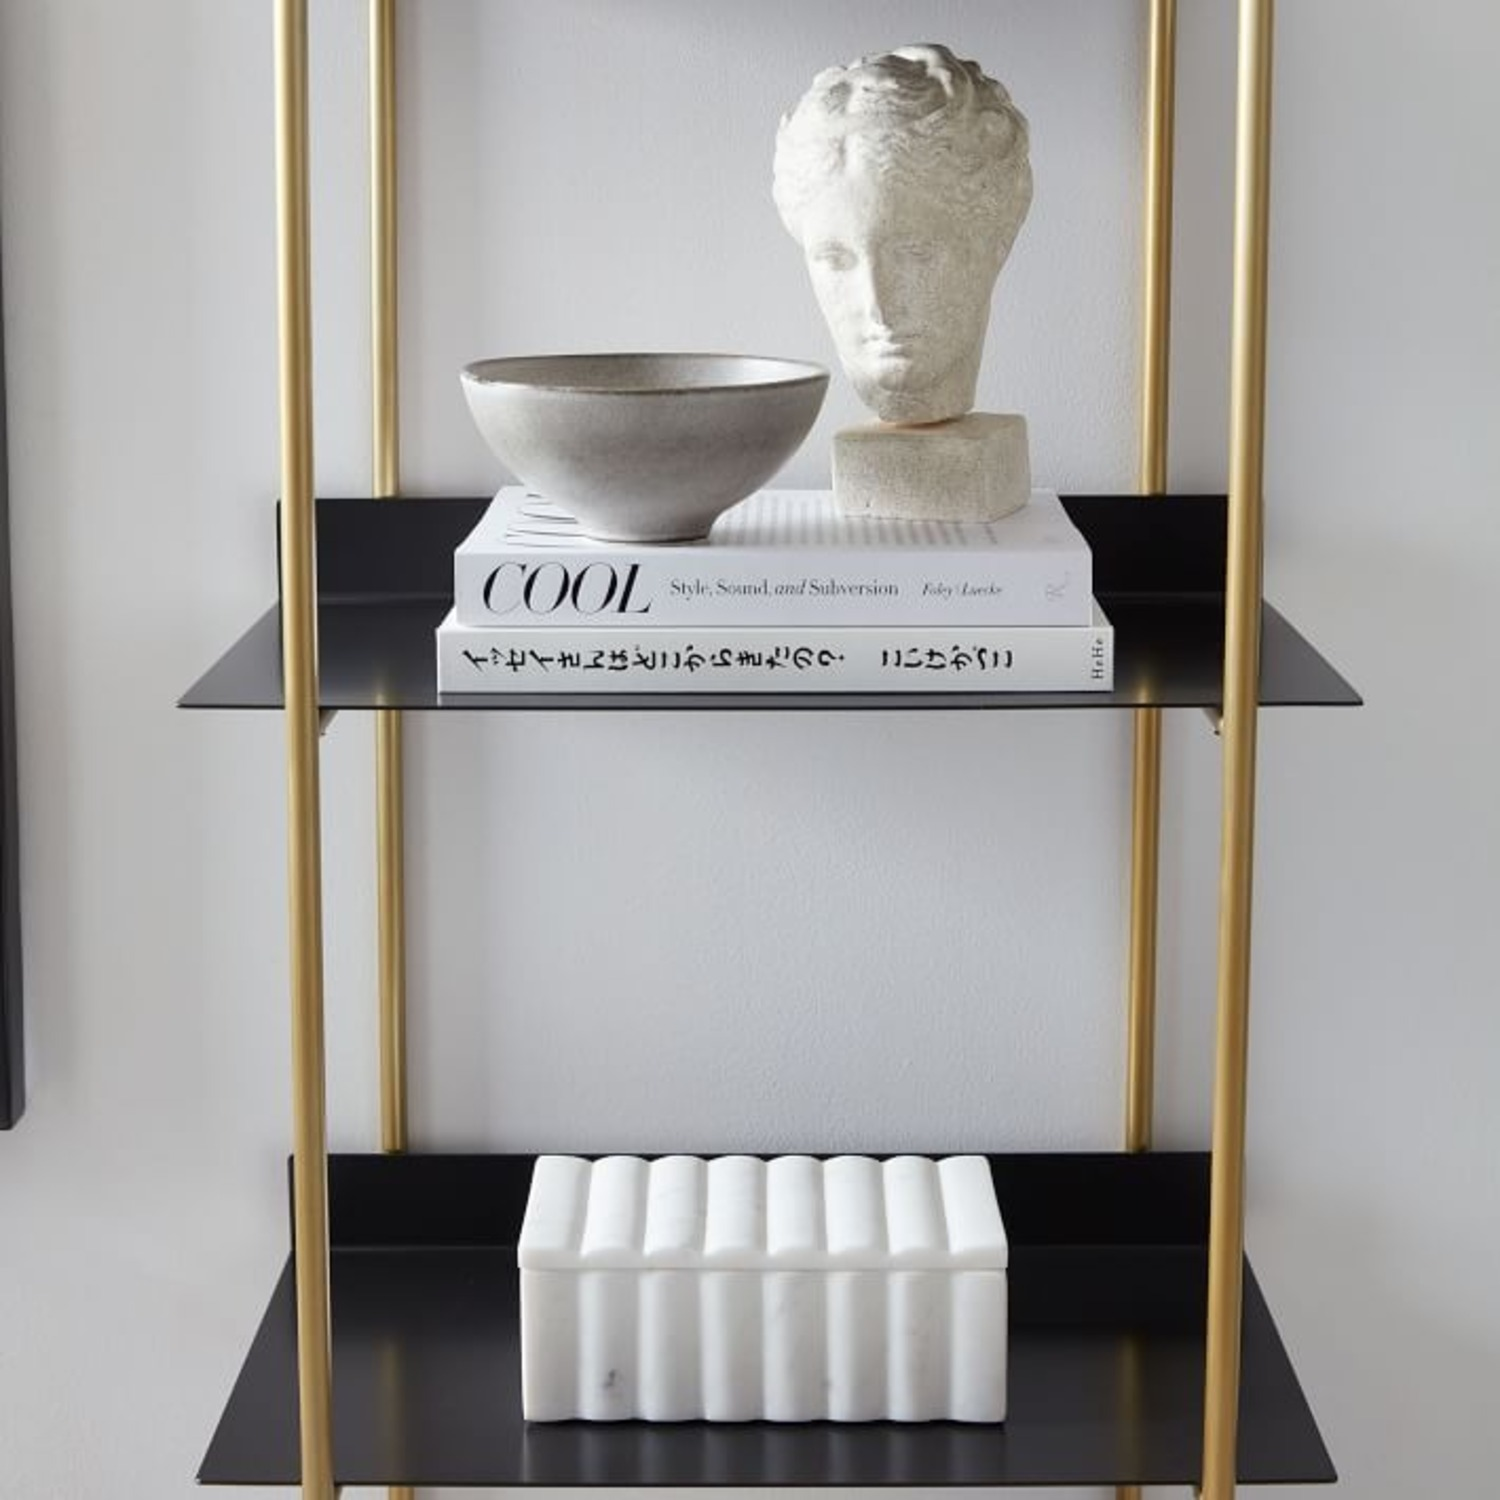 West Elm Floating Lines 4-Tiered Wall Shelf - image-2